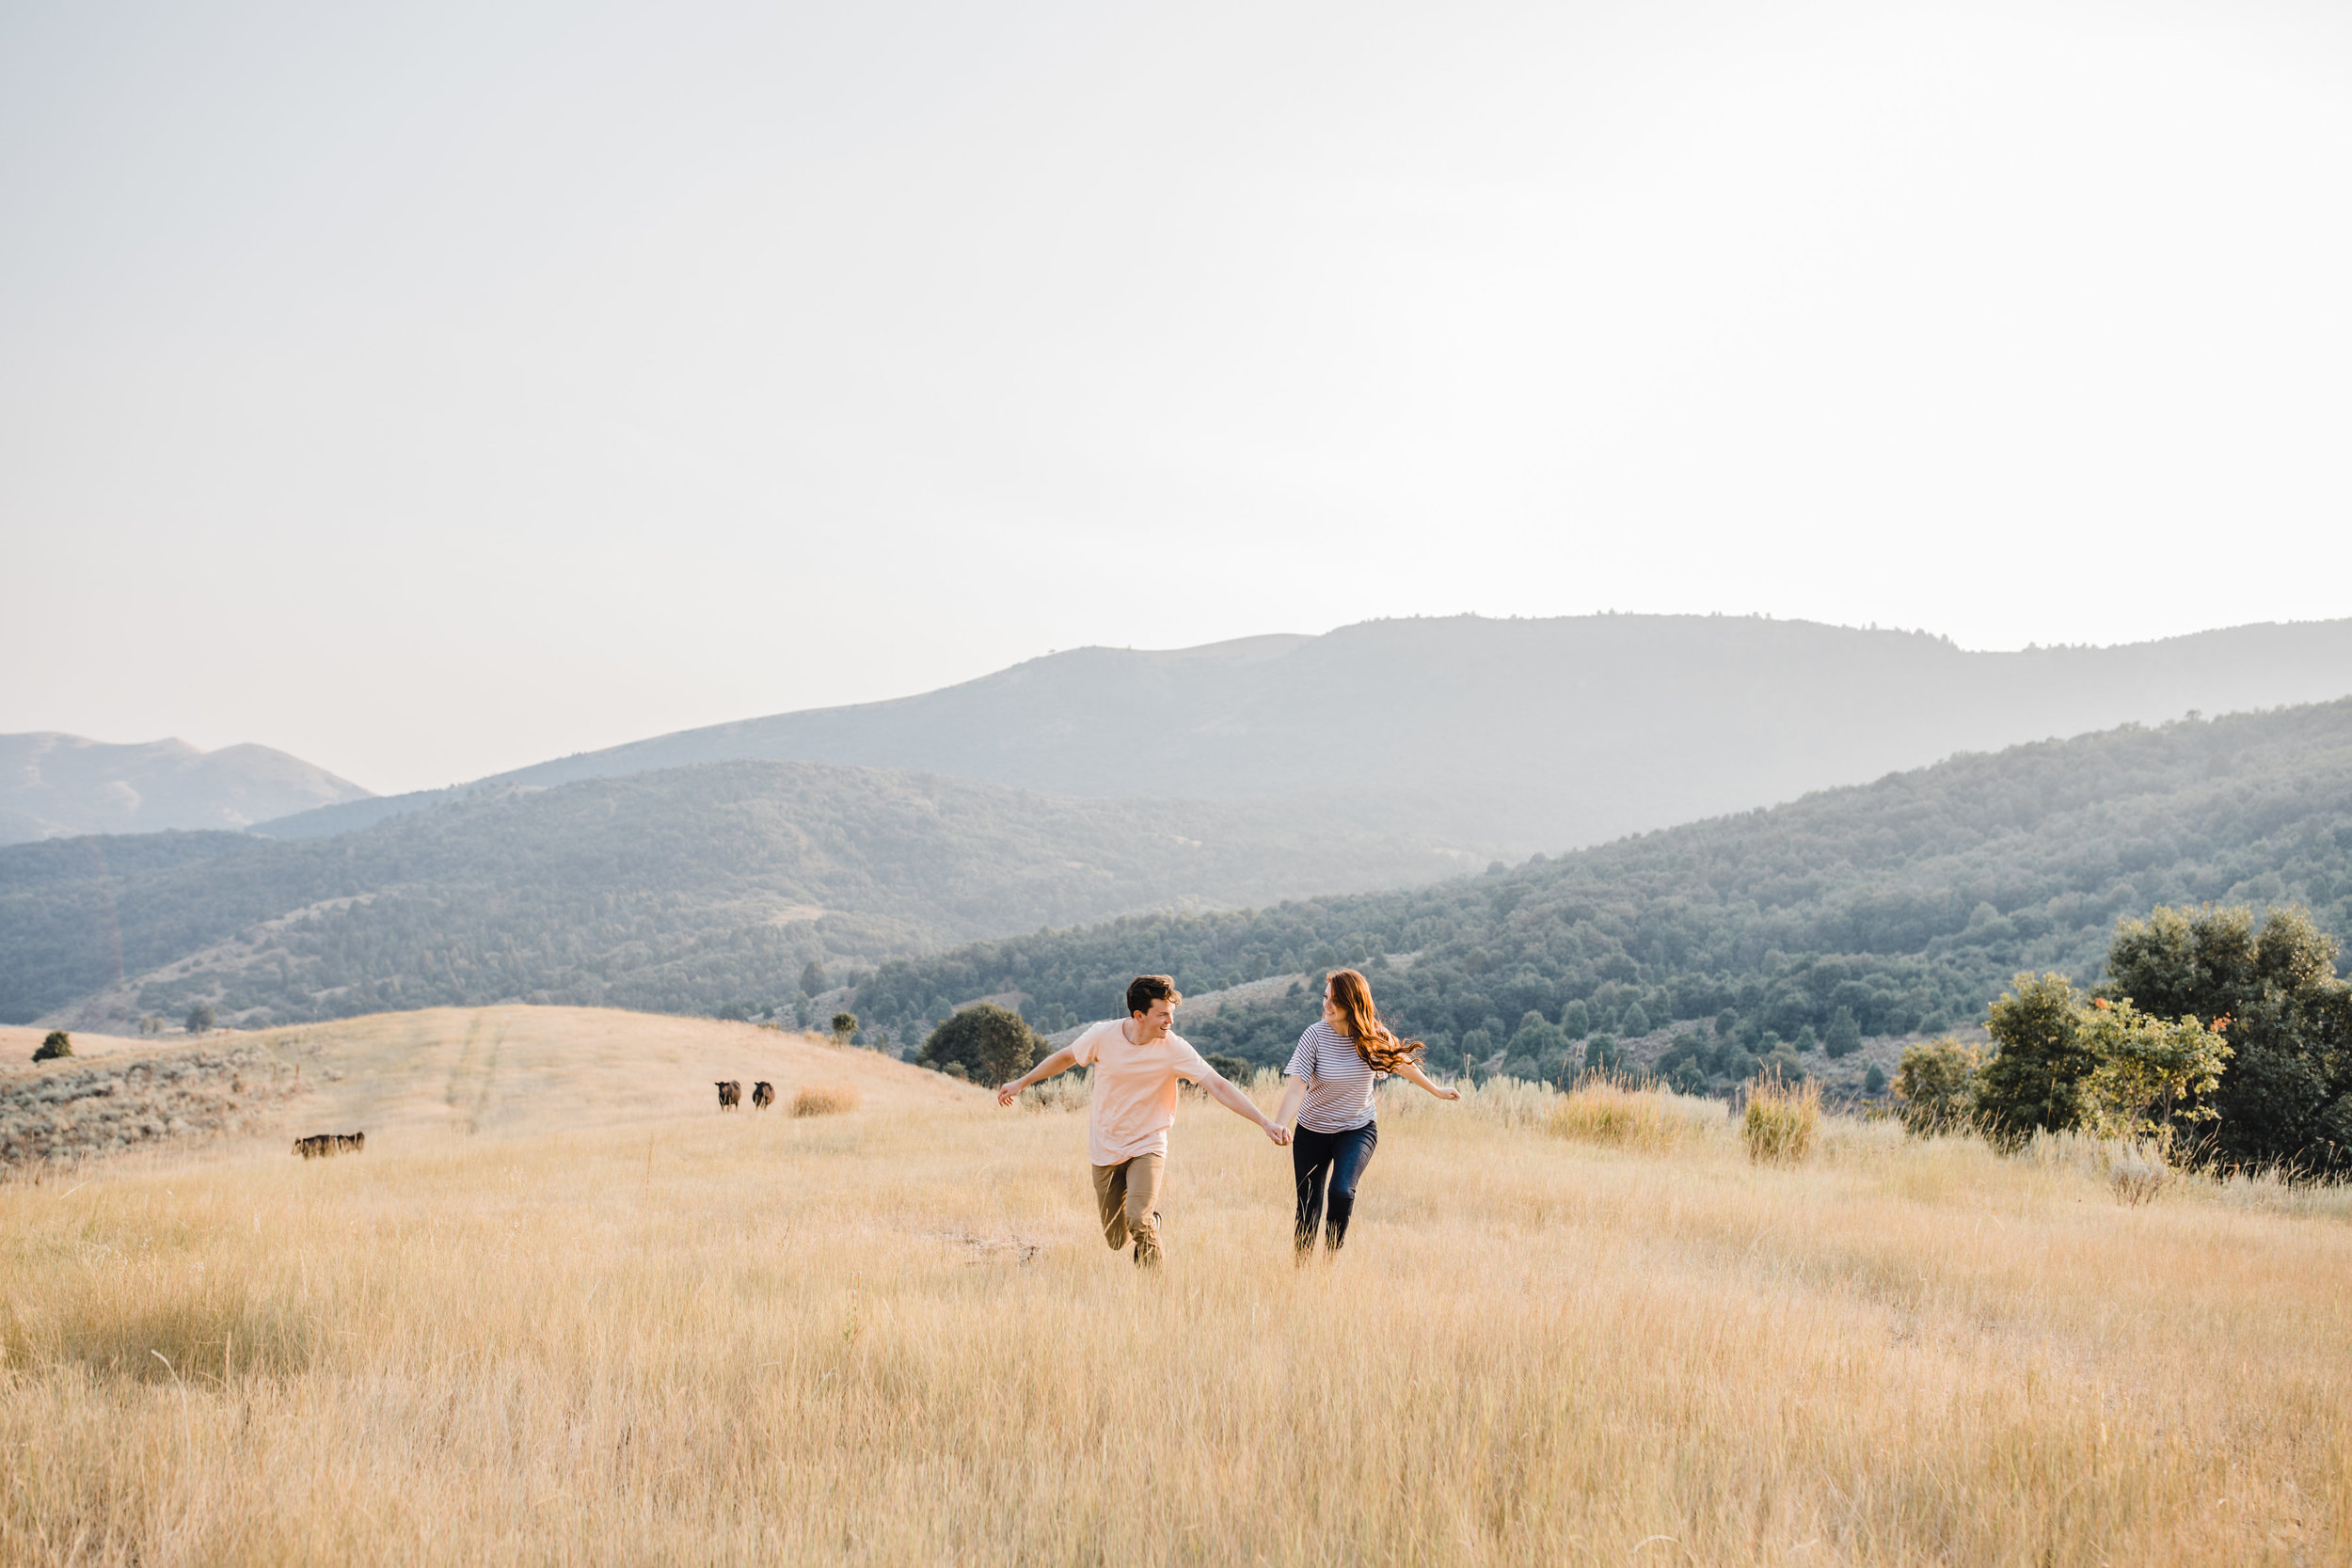 engagement photographer sardine canyon holding hands running laughing fields mountains